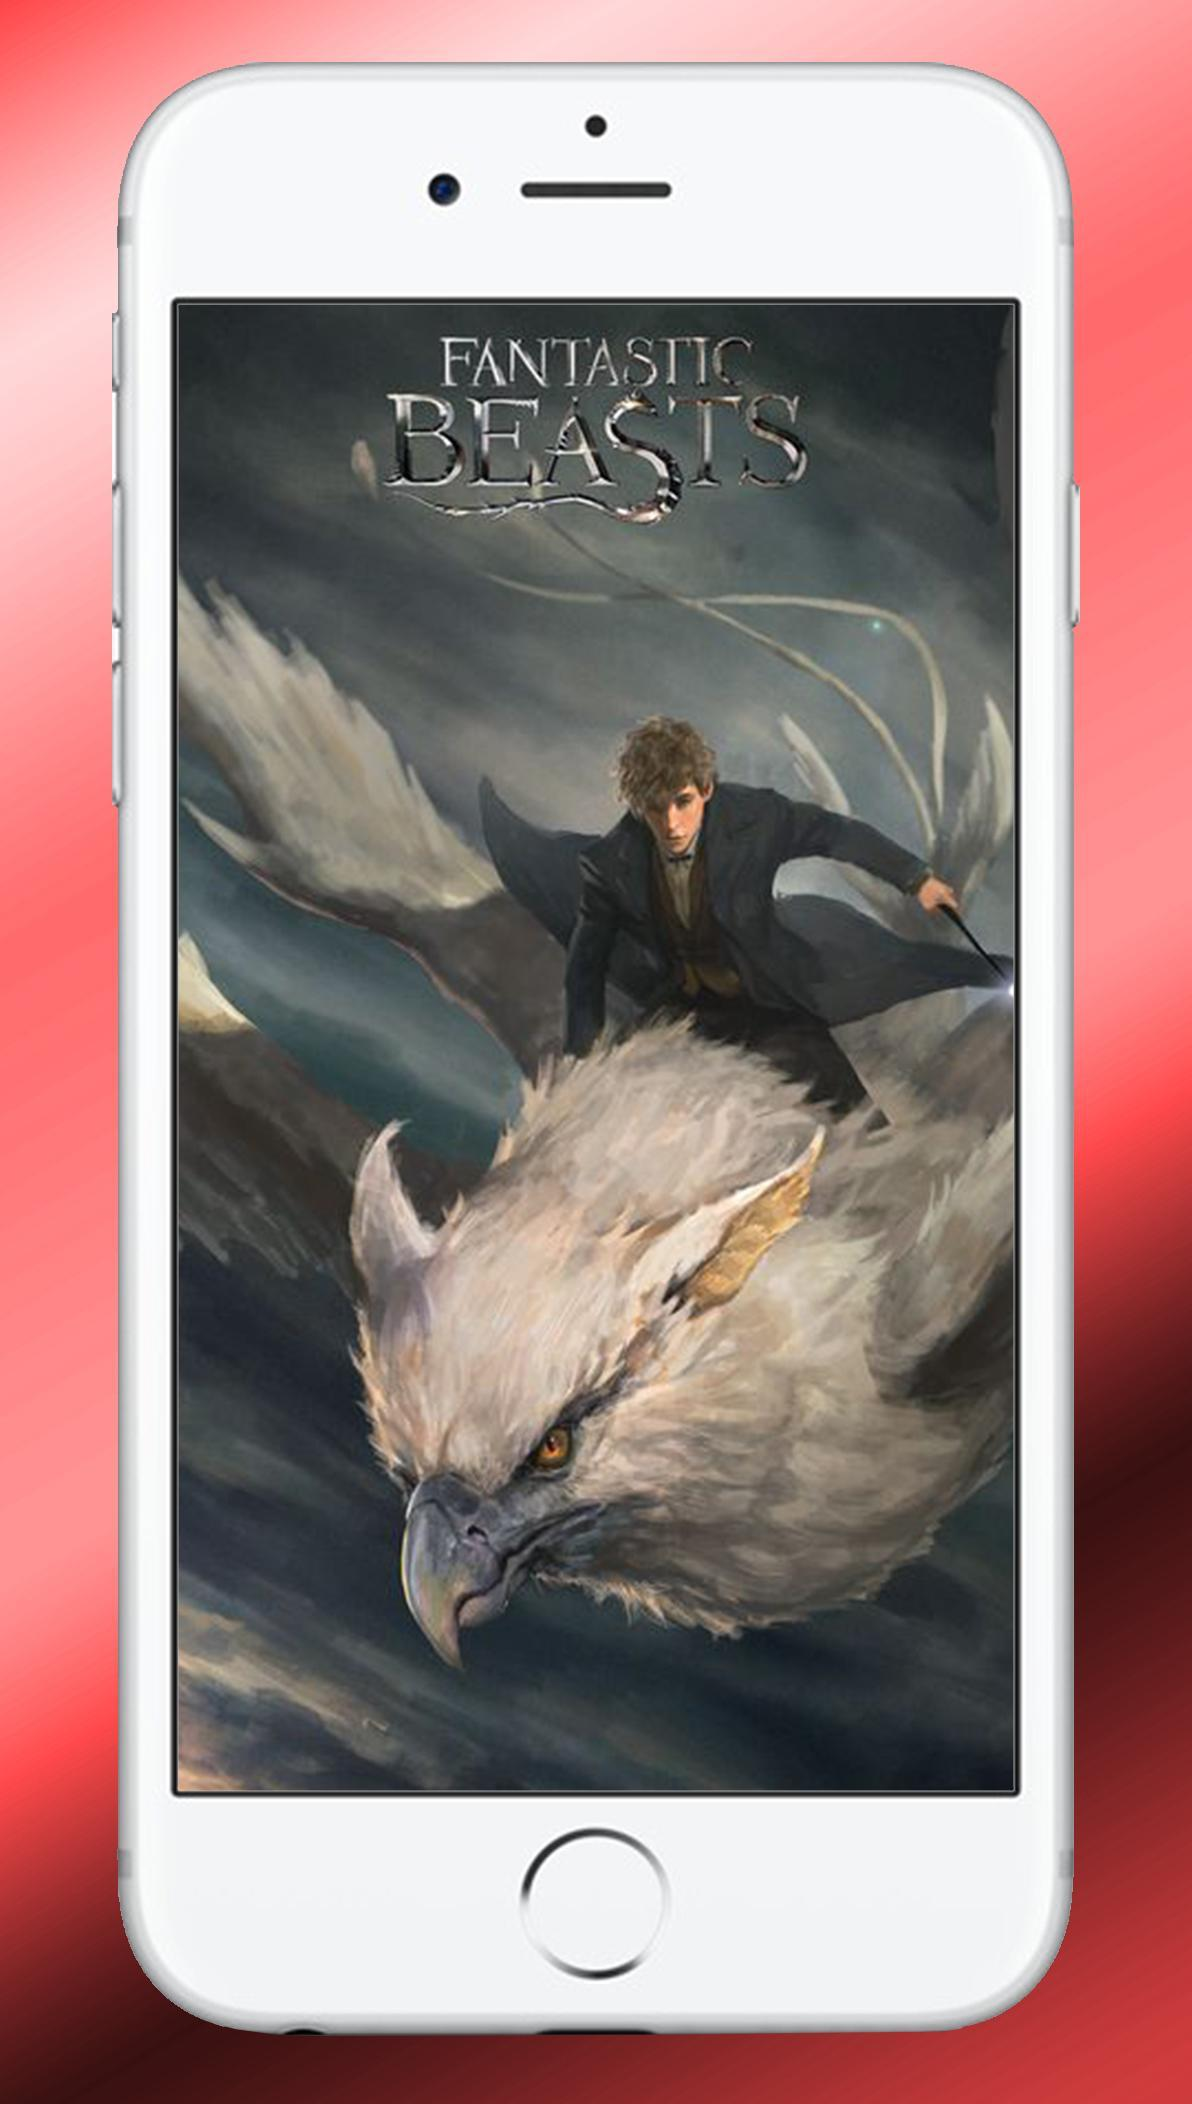 Fantastic Beasts And Where To Find Them Wallpaper For Android